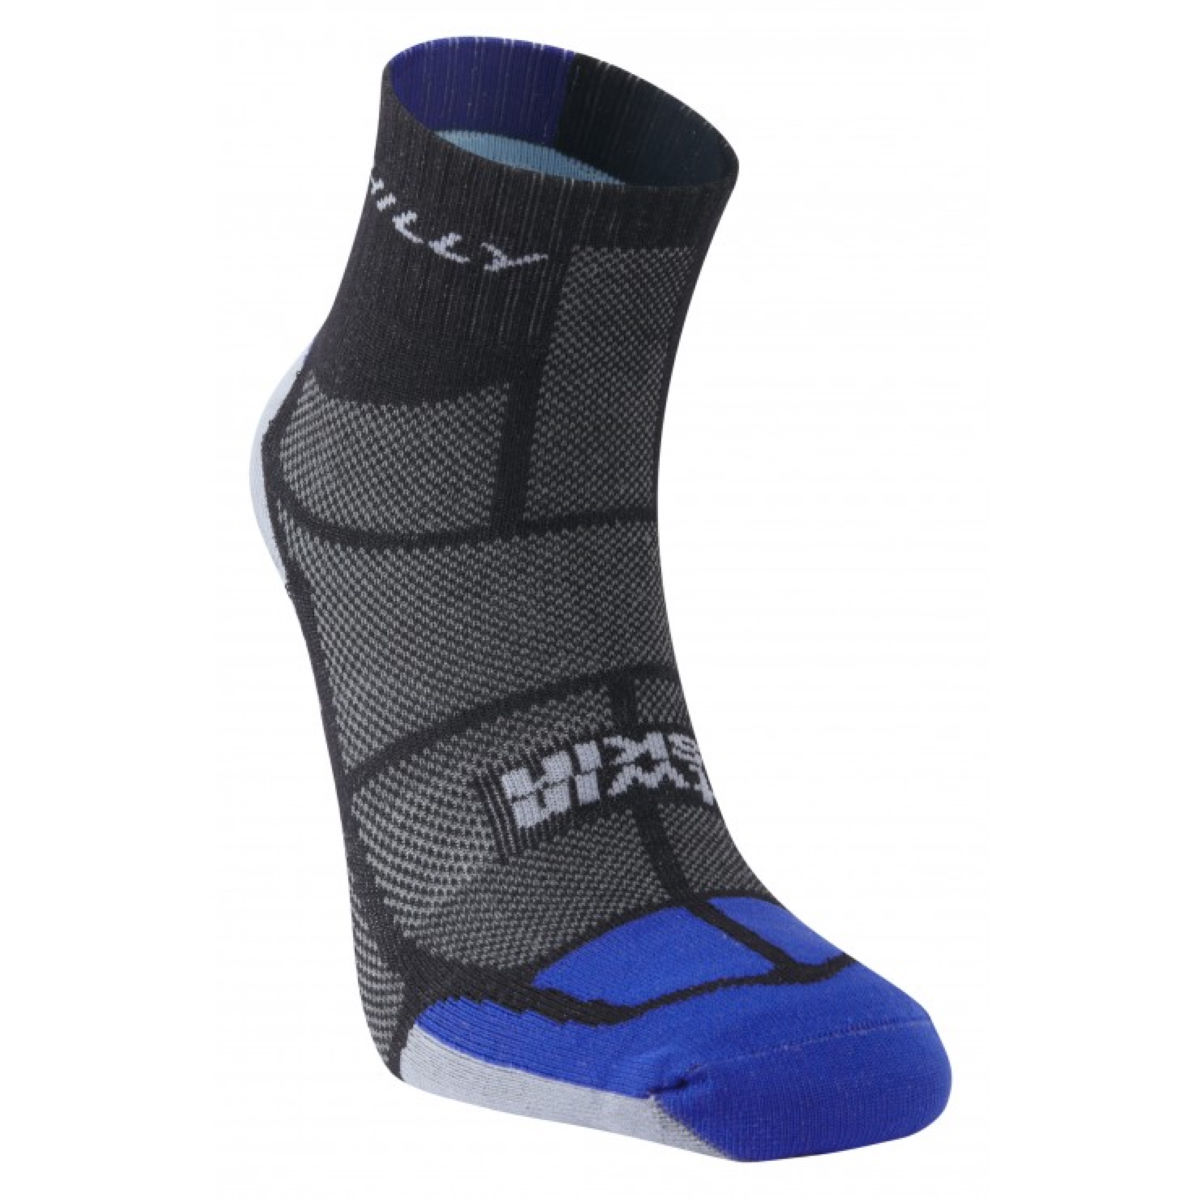 Chaussettes Hilly Twin Skin PE14 - M Black/Blue/Grey  Chaussettes